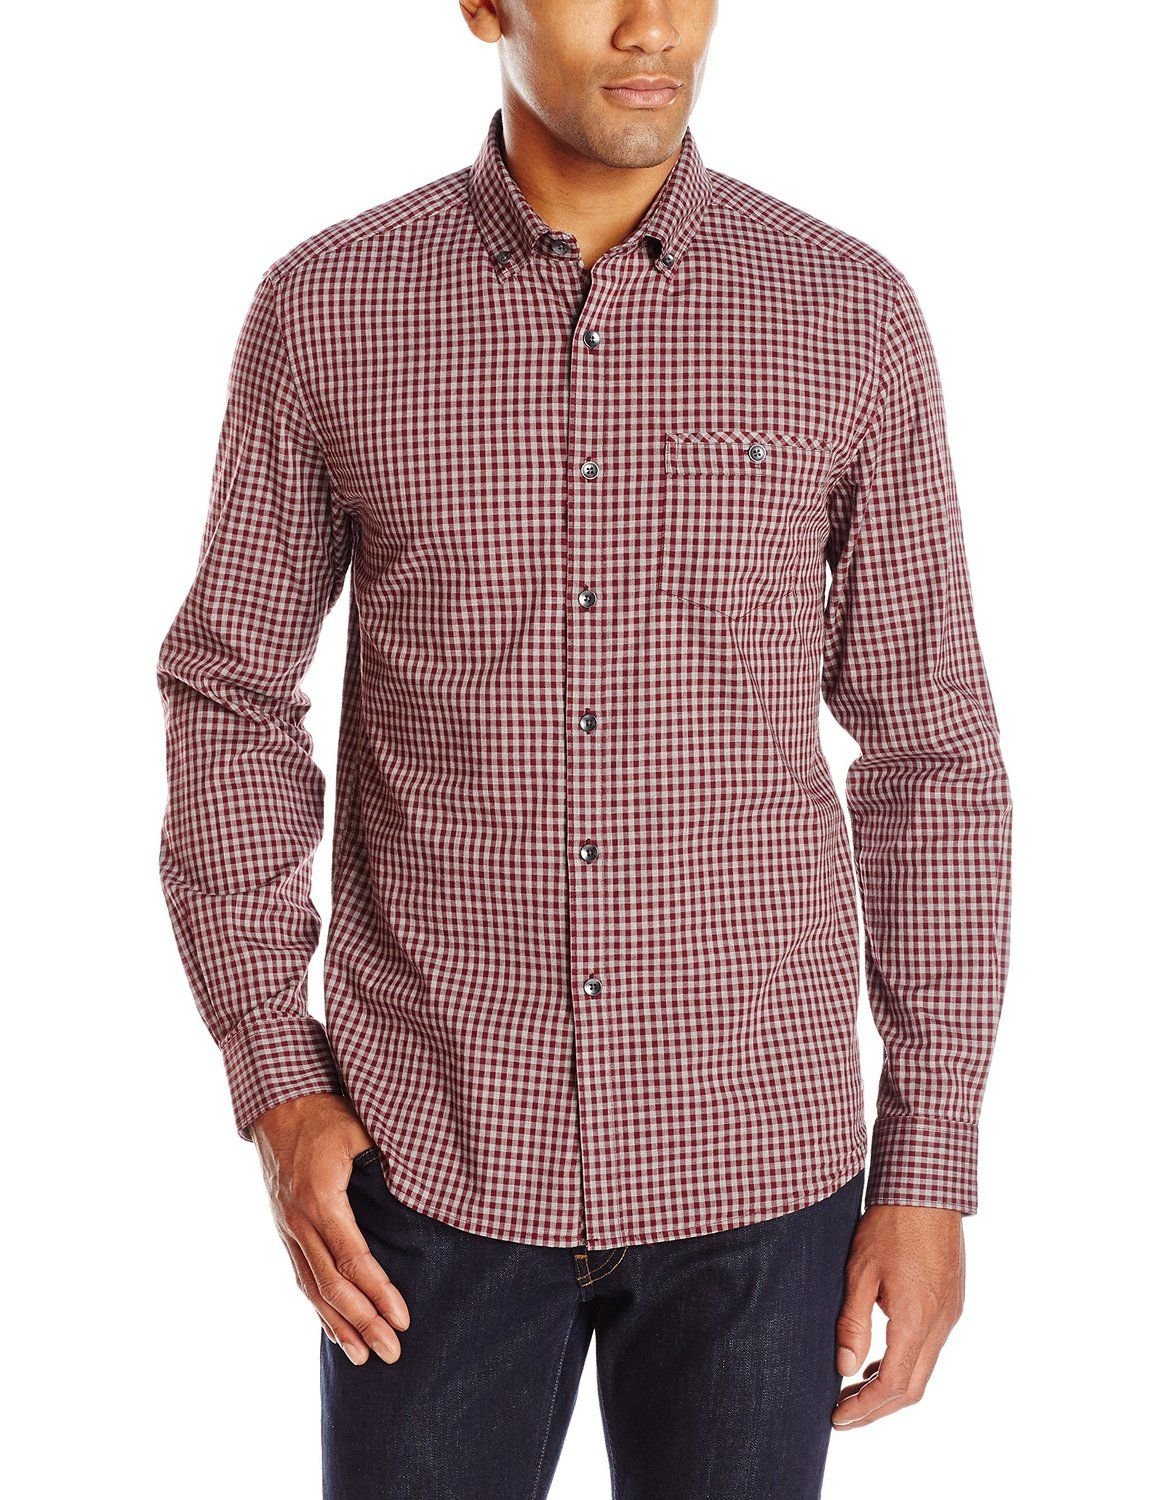 Kenneth Cole Men's Long-Sleeve Heather Check Shirt at Amazon Men's Clothing store: